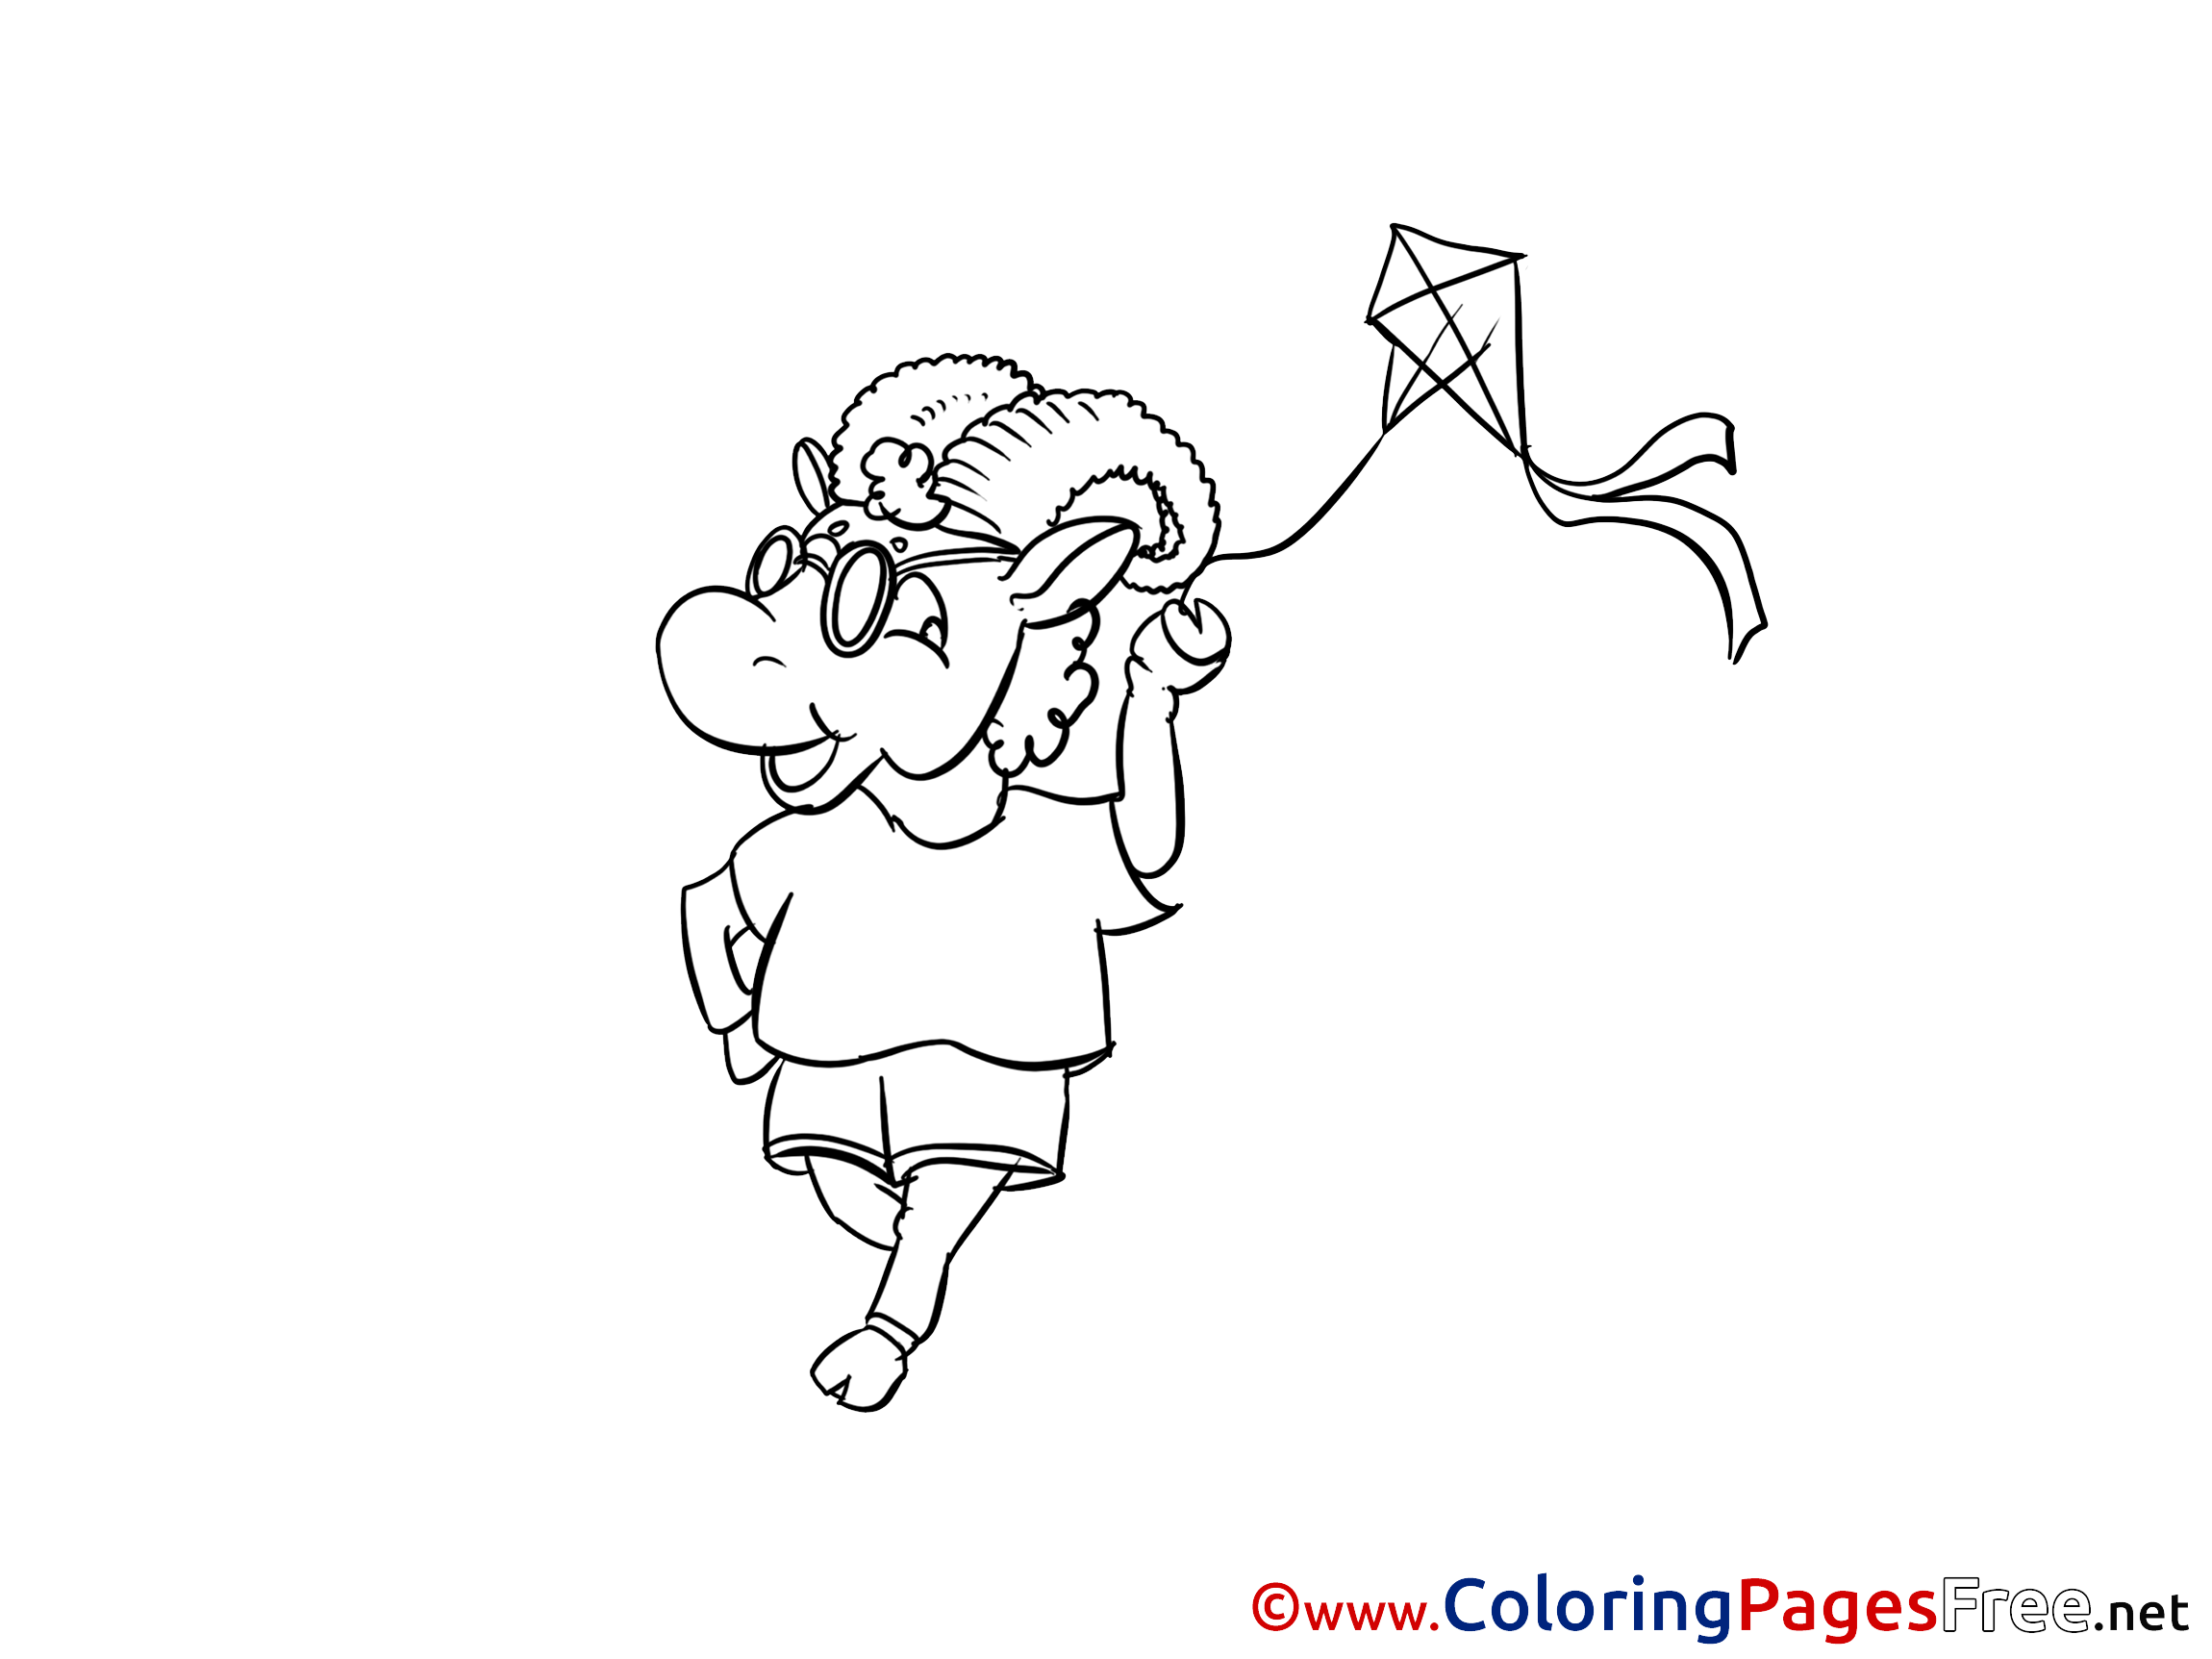 - Kite Coloring Pages For Free